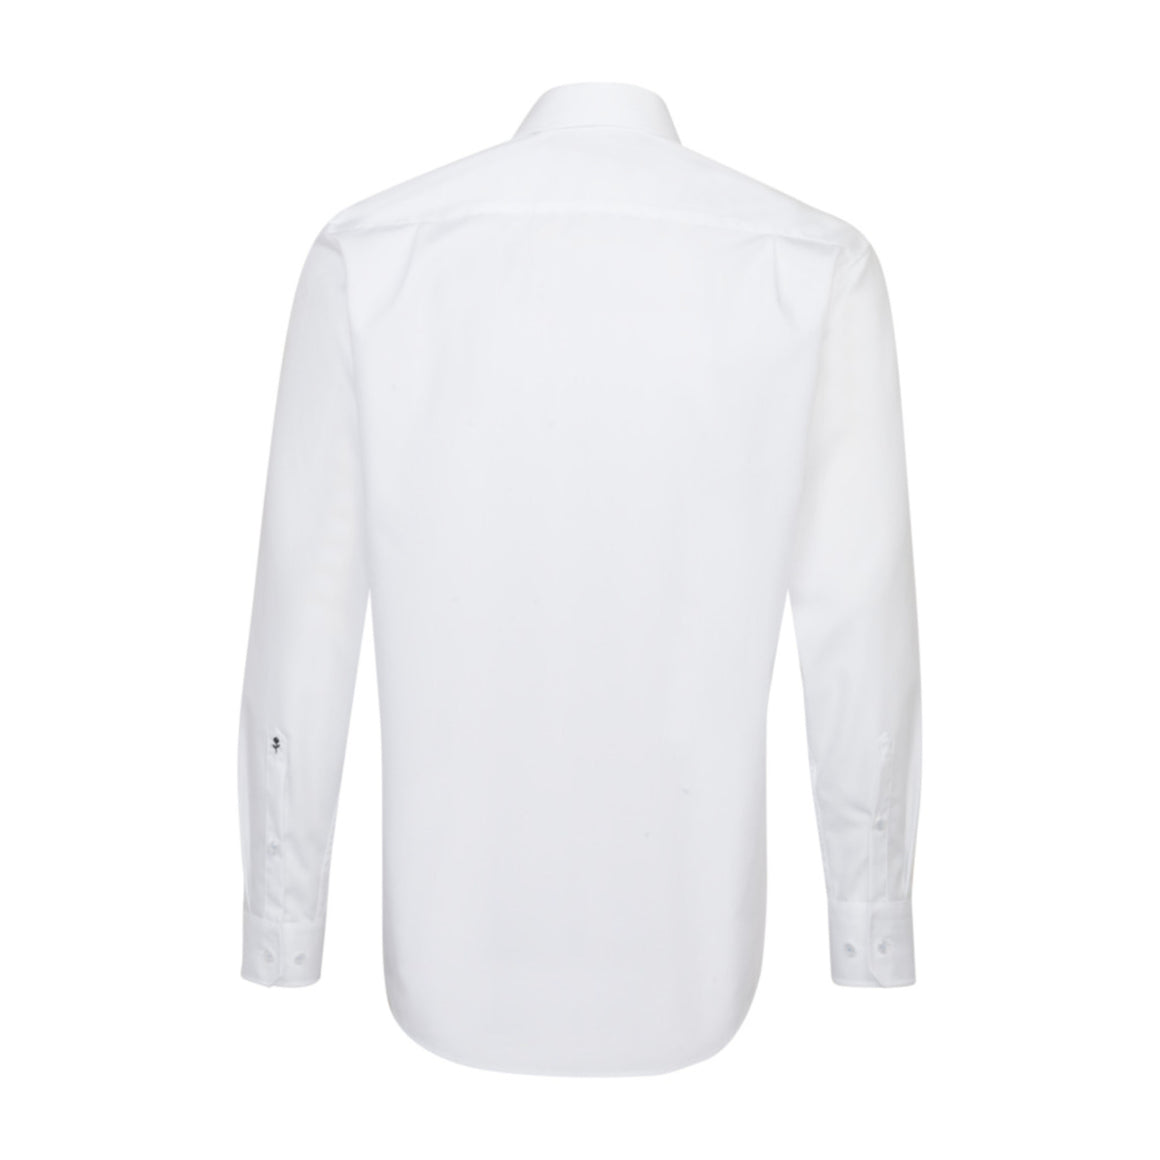 Plain Shirt With Trim for Men in White